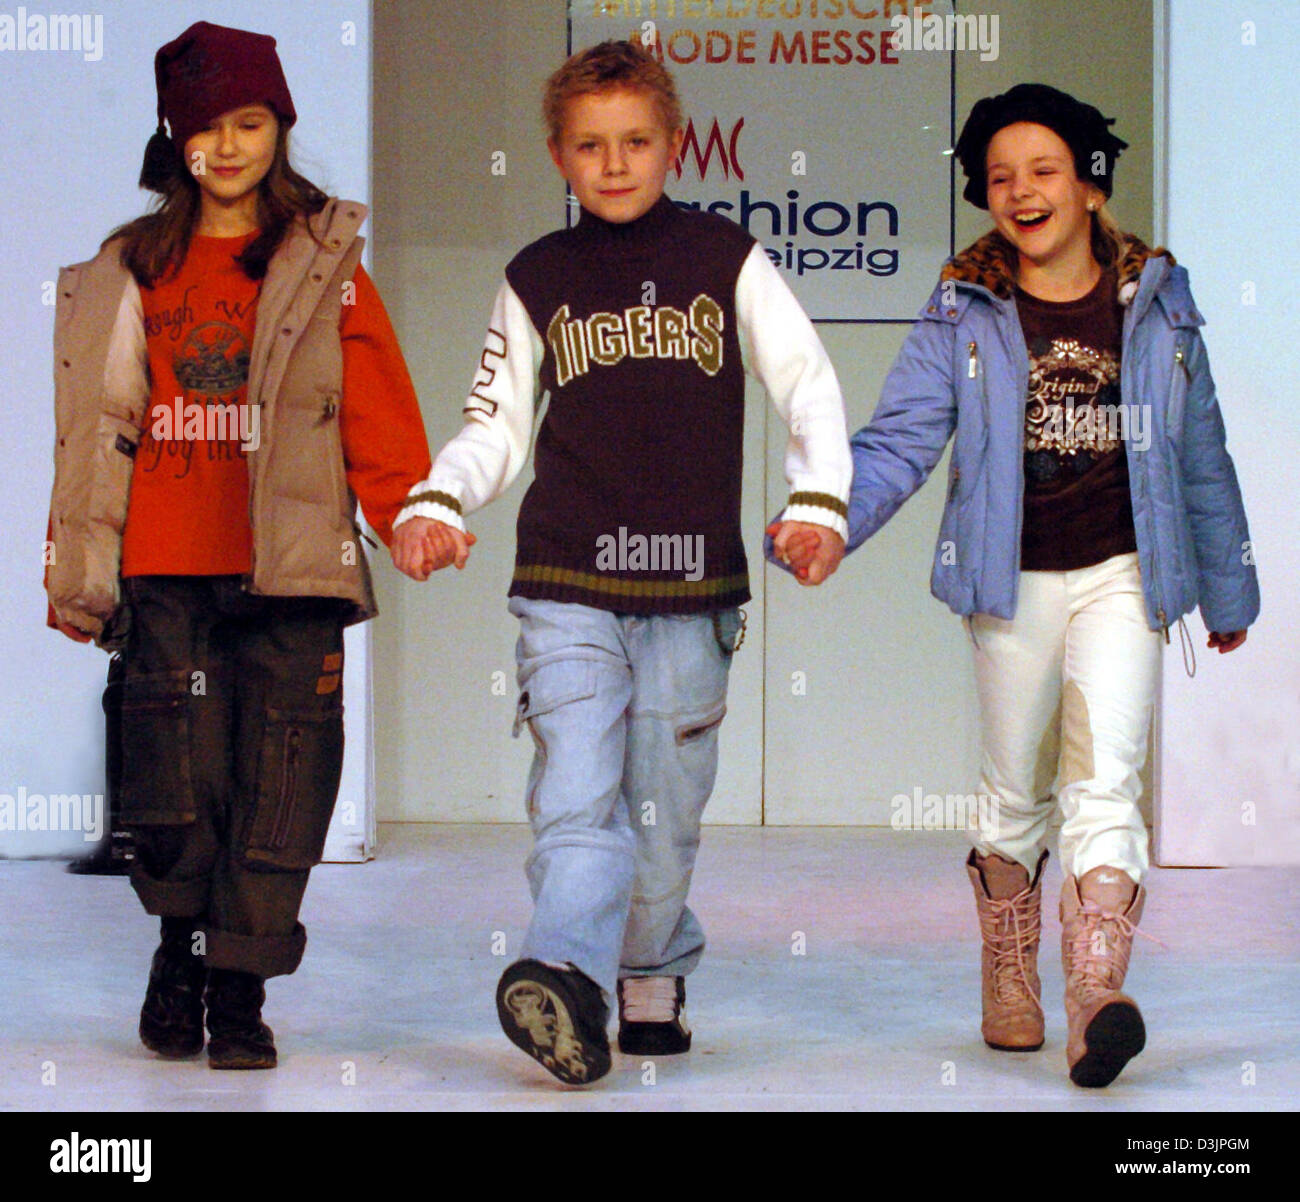 (dpa) - Children models (from L) Marie, Martin and Maria Antonia hold hands and smile as they walk down the catwalk Stock Photo